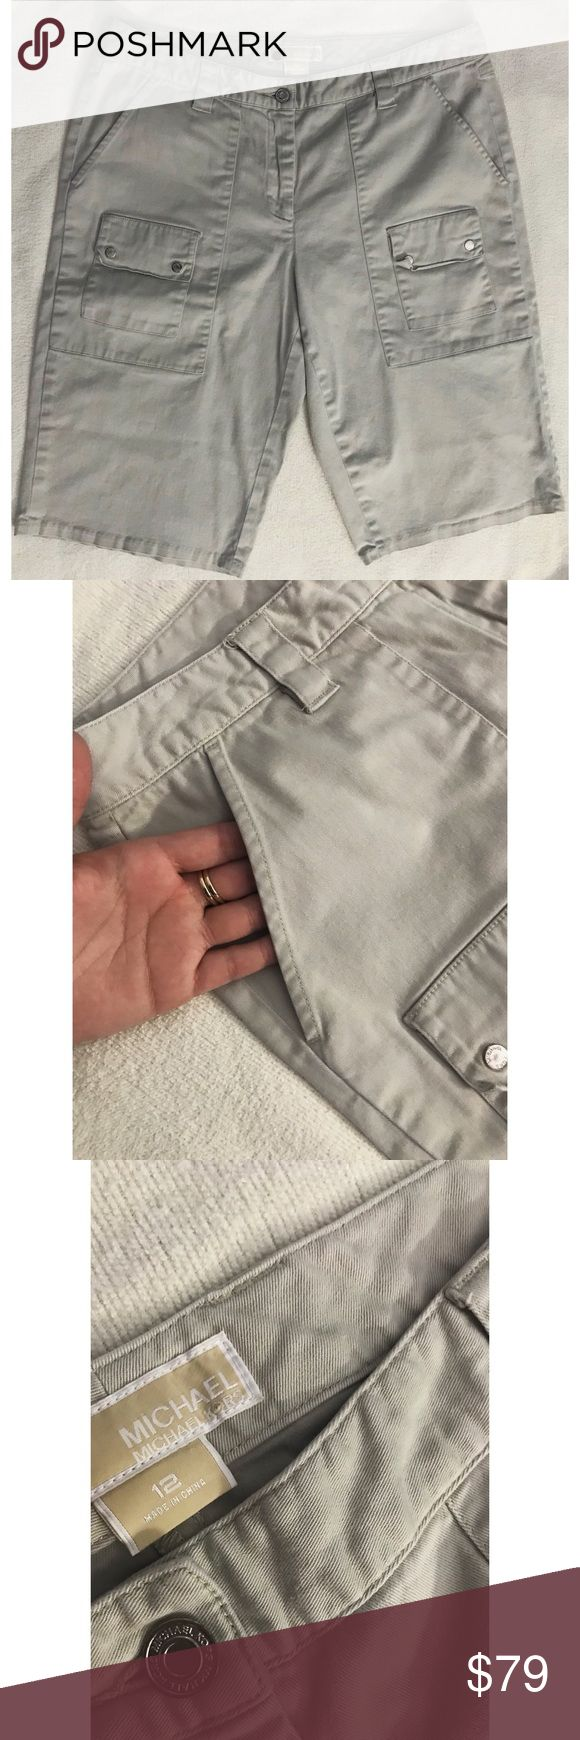 Michael Kors khaki capris Michael Kors khaki capris, has a stain on the tag other than that it's in perfect condition.                                                                                                                                                                                                                                                                    🌸 Fast shipper 🌸 Accept reasonable offers 🌸 I do bundle discounts too                                            🌸…